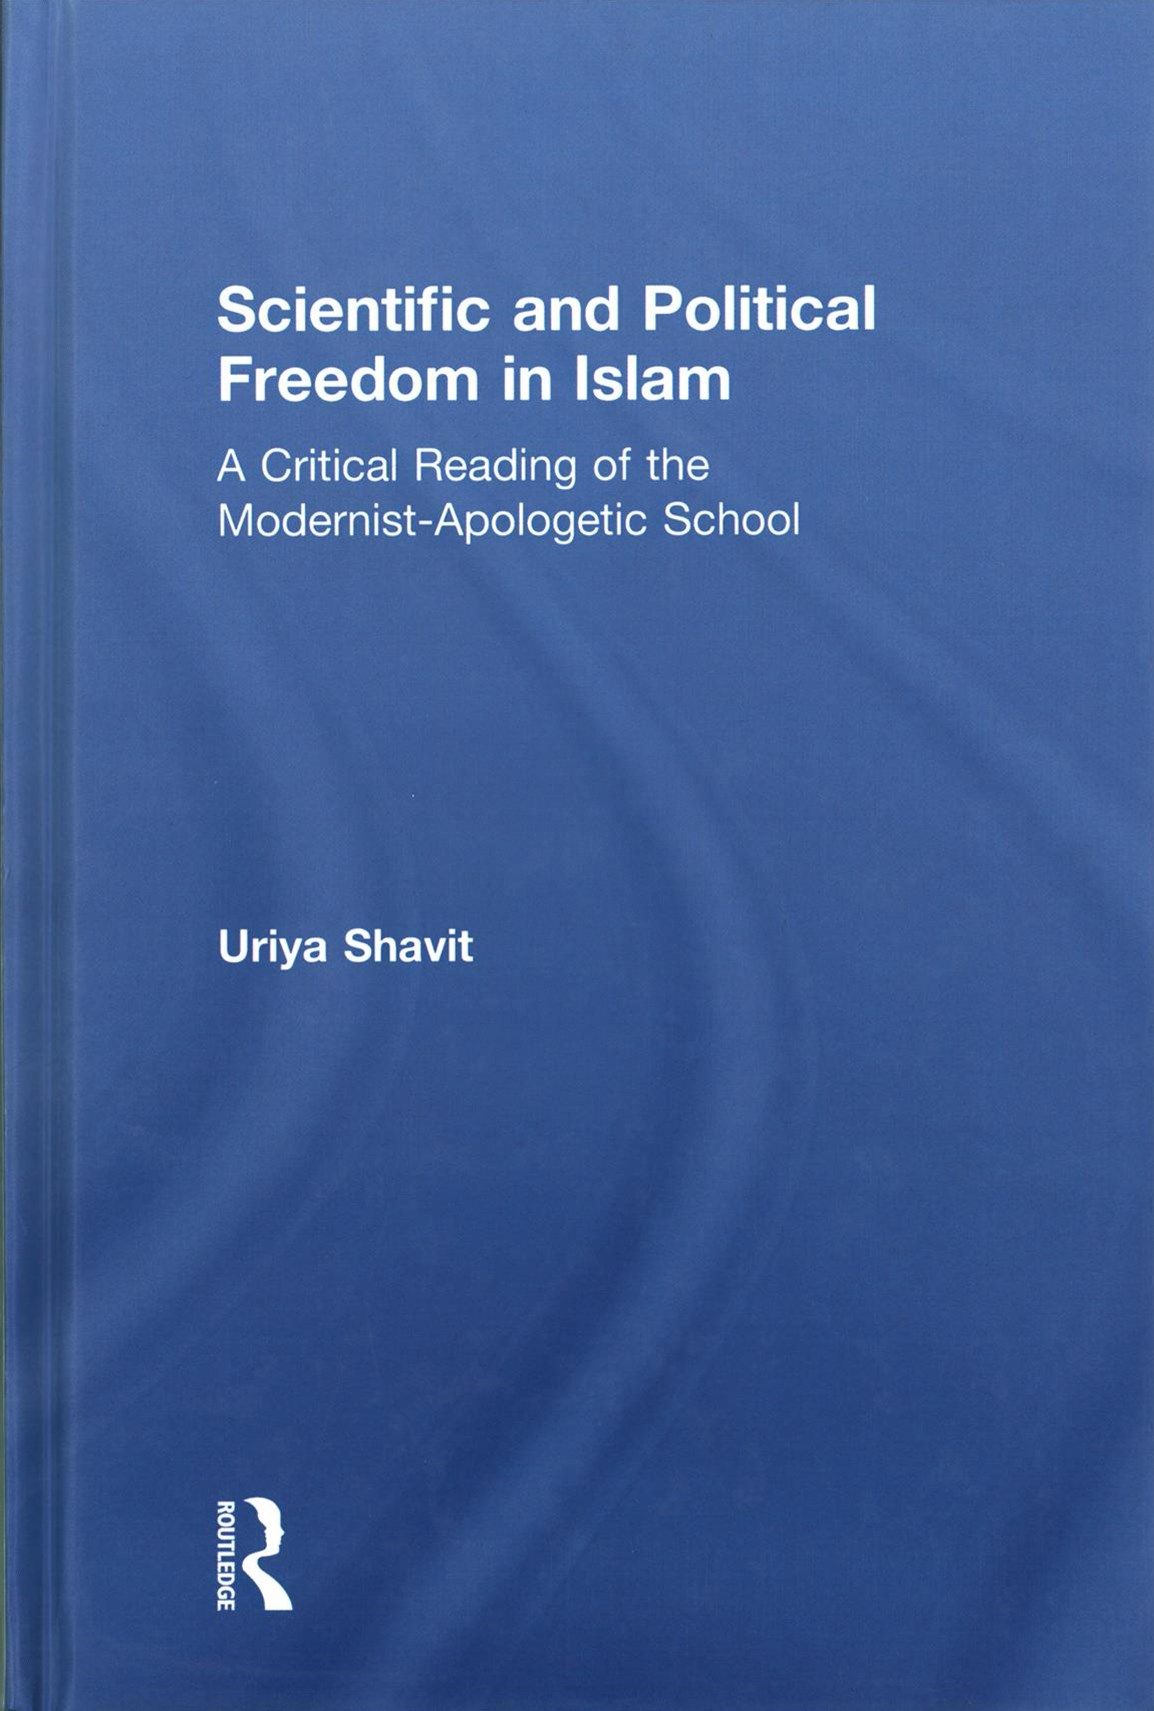 Scientific and Political Freedom in Islam